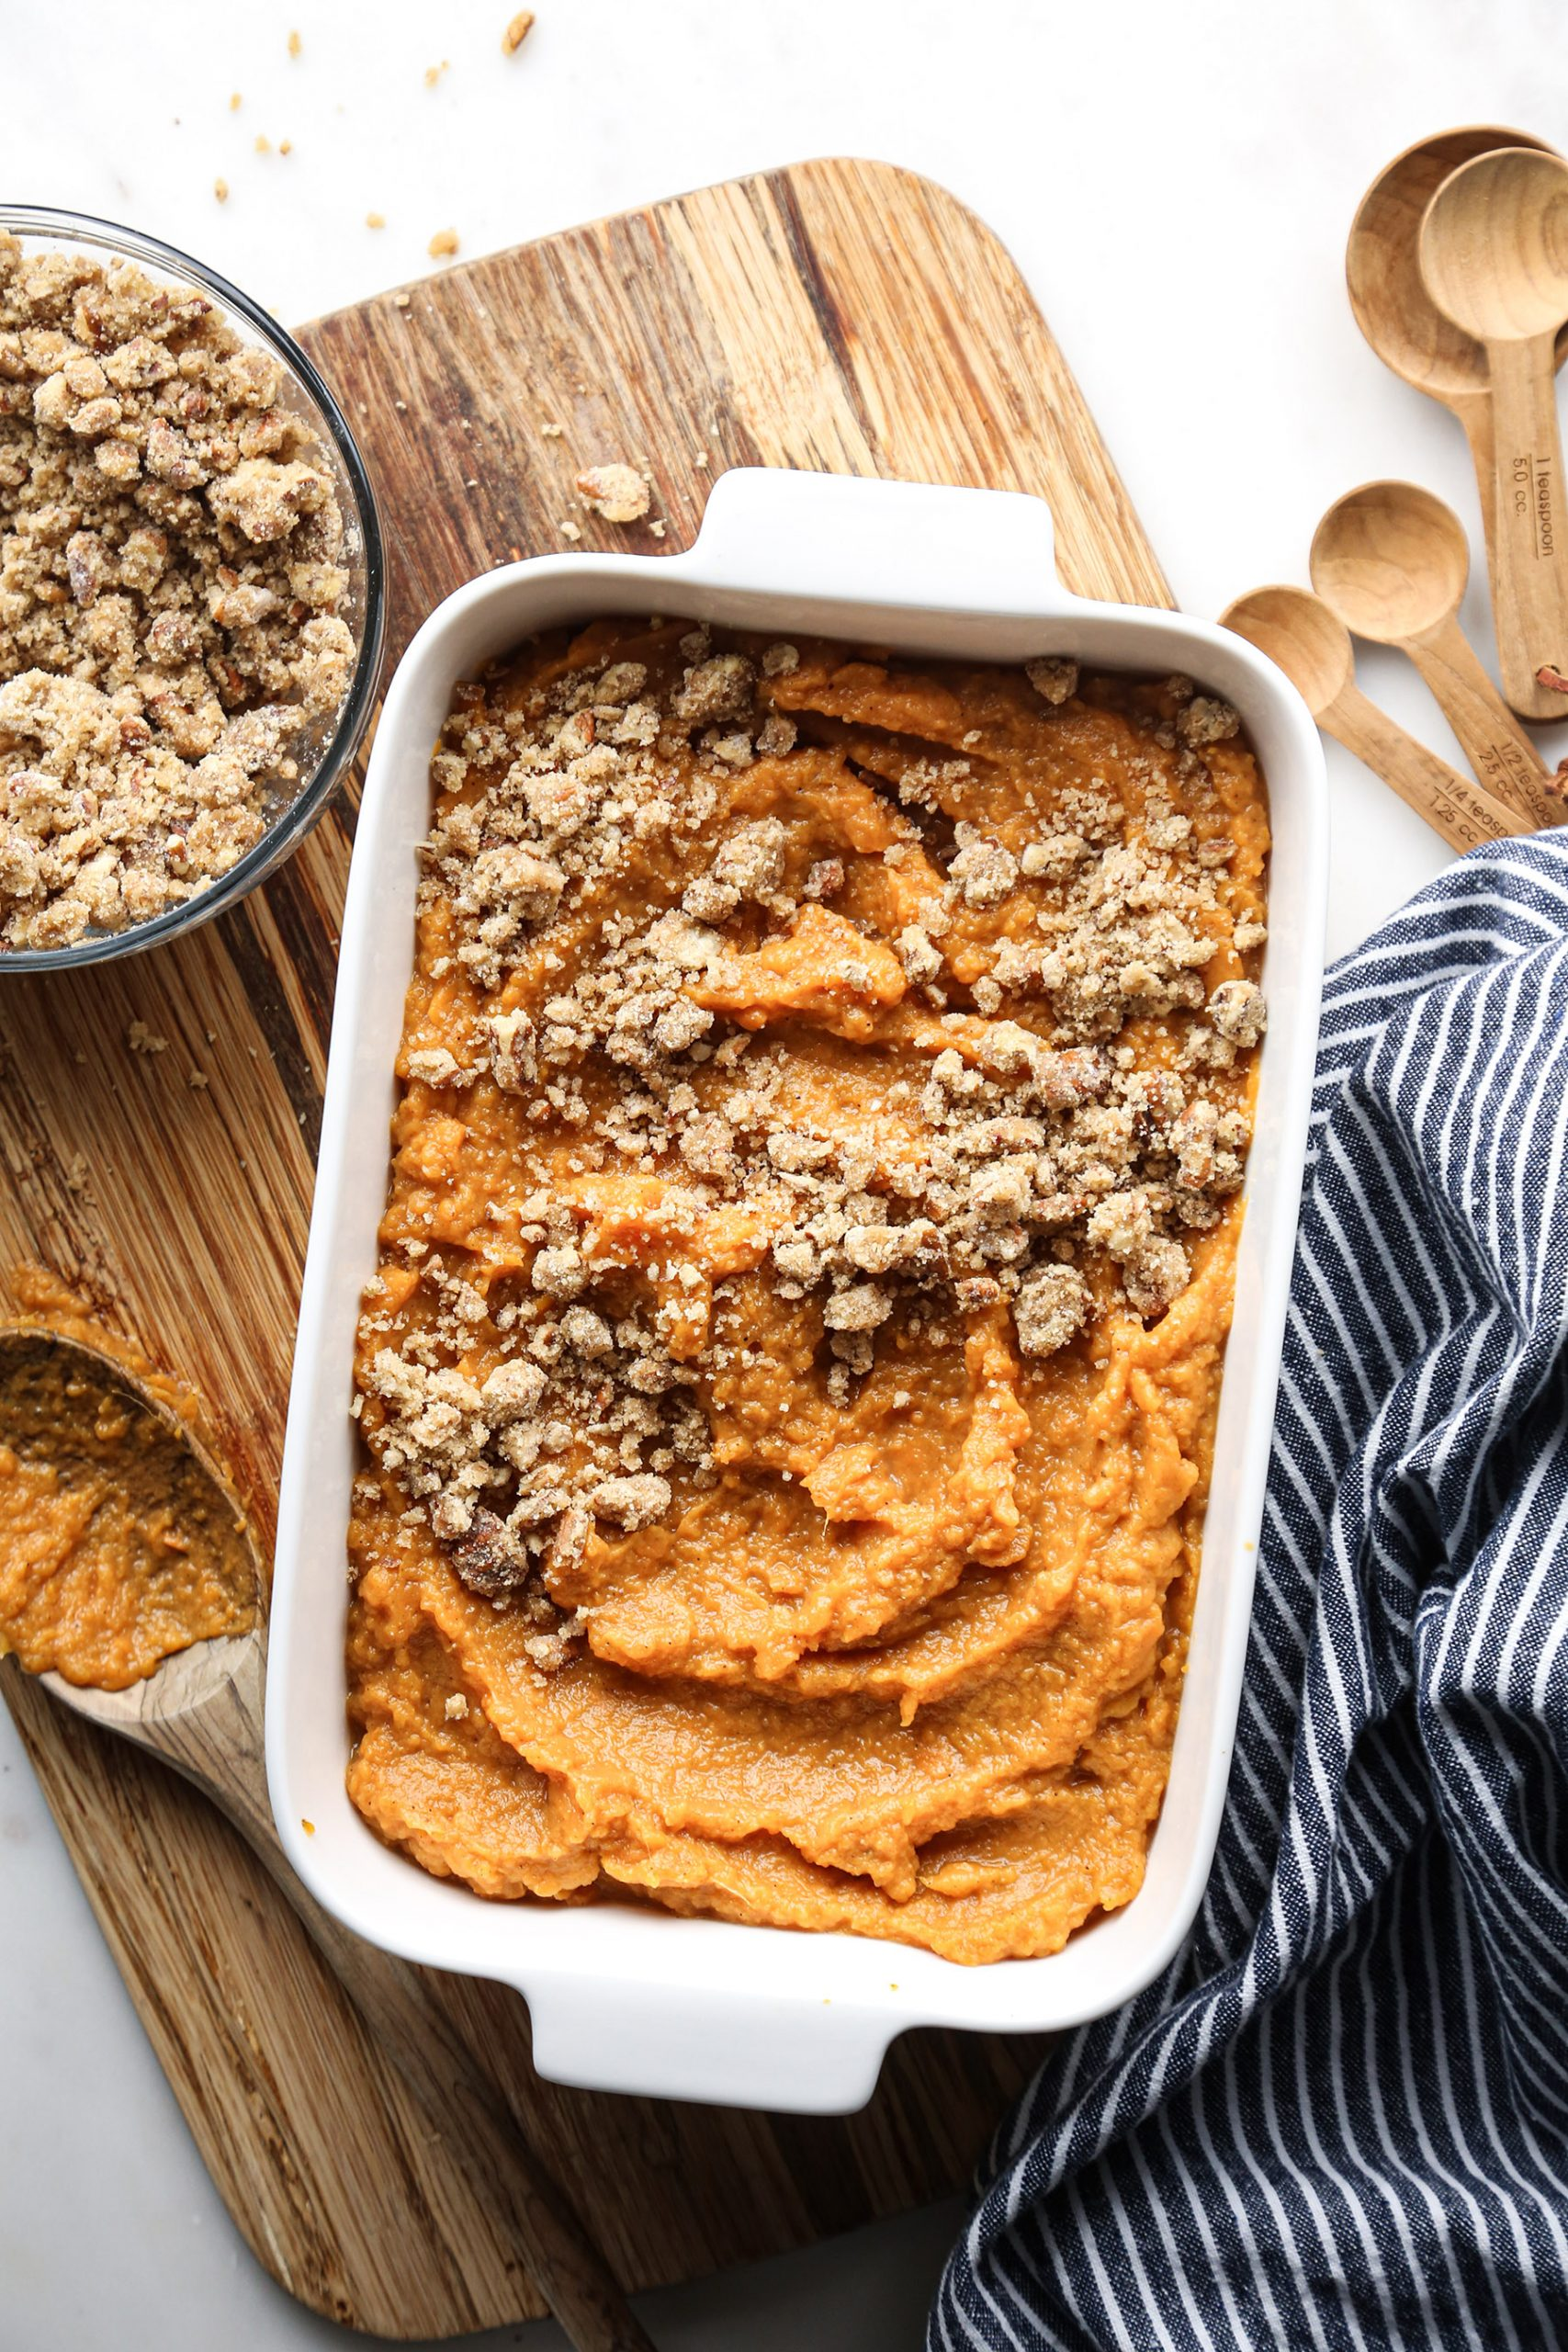 Healthier Sweet Potato Casserole | Vegan friendly with gluten, dairy, and refined sugar free options